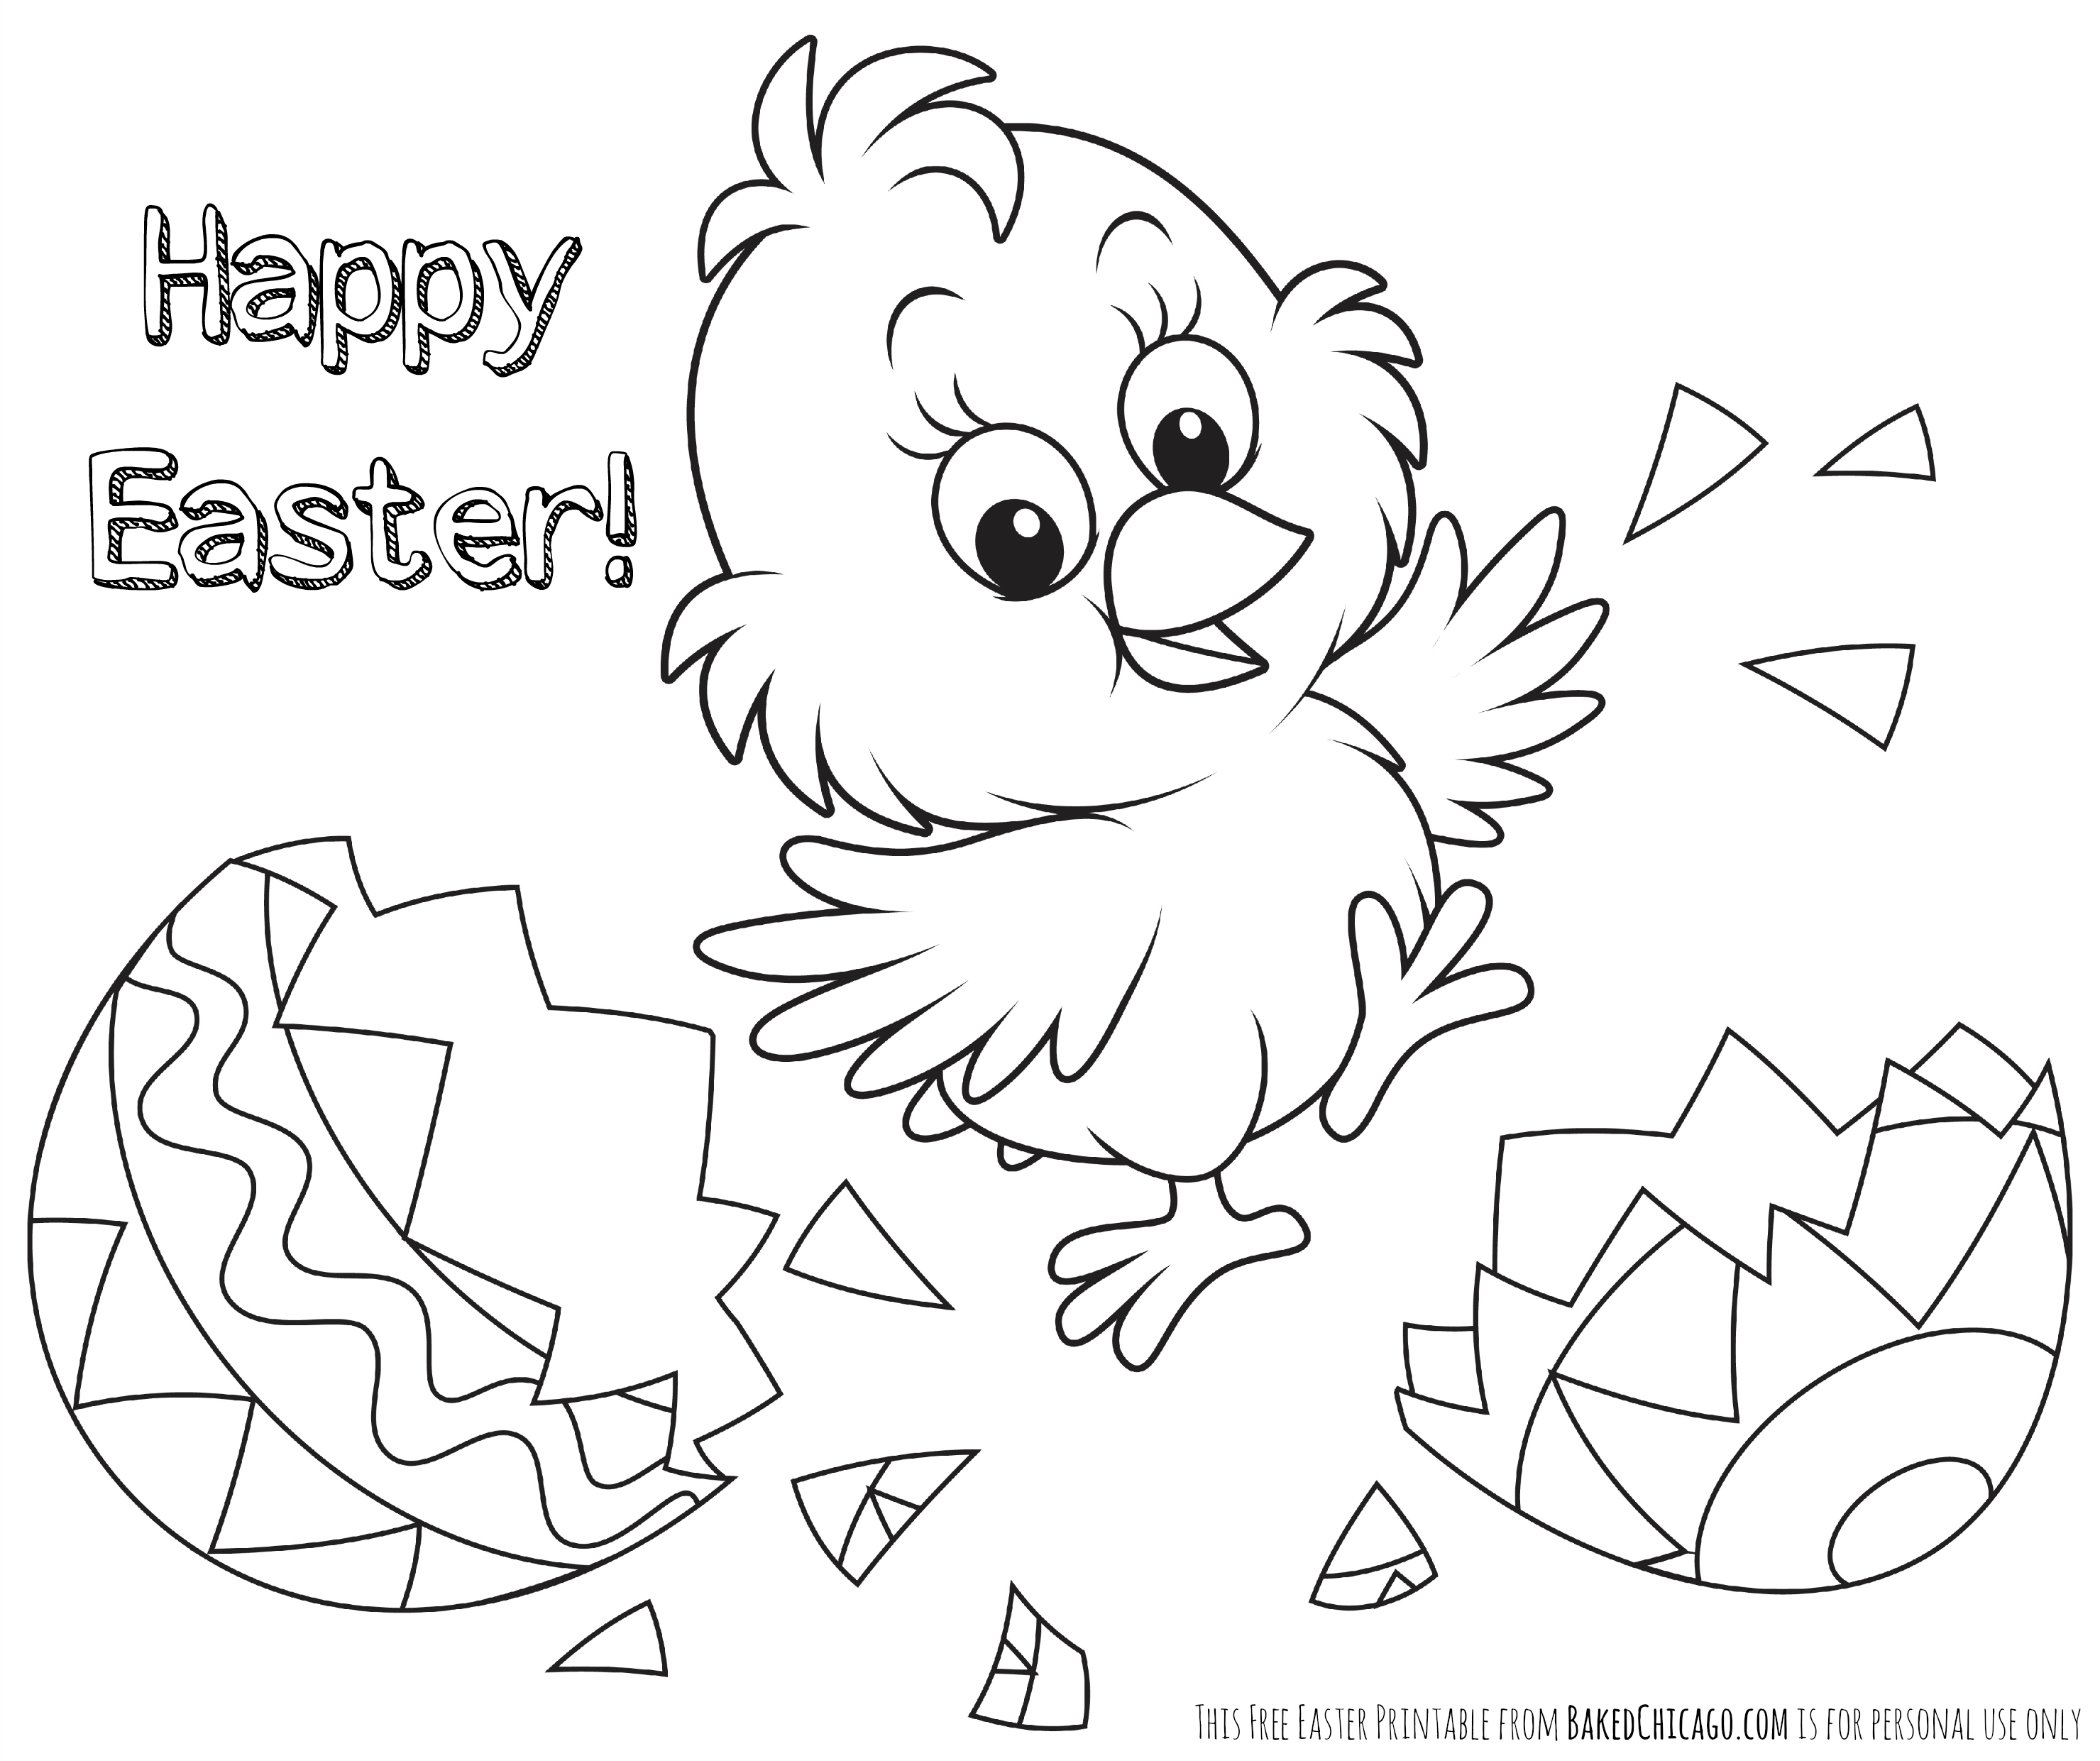 Easter Coloring Pages to Print Coloring Page Gallery Of Delighted Bunny Print Out Coloring Pages Easter for Kids Crazy Printable